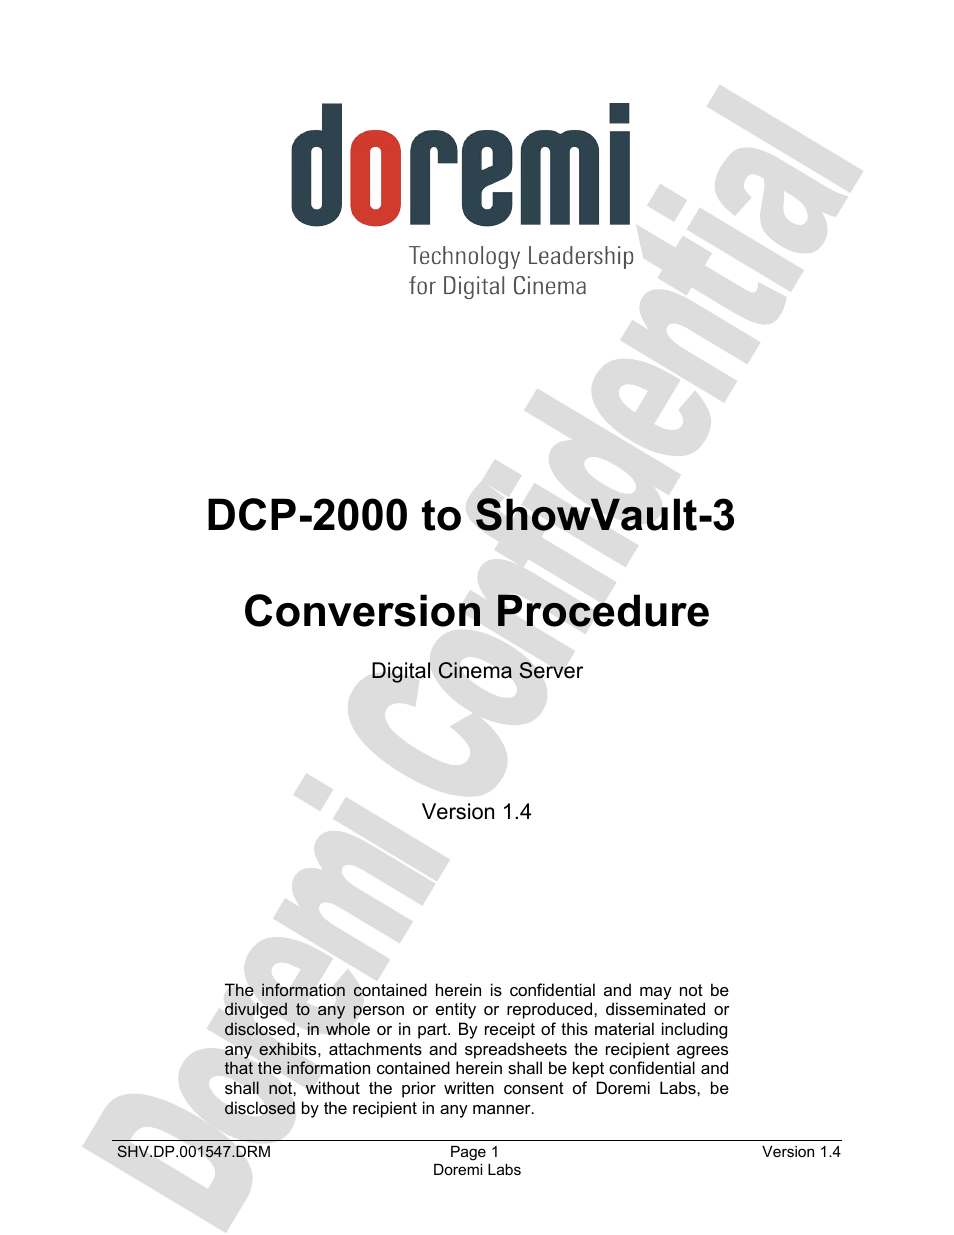 Doremi DCP to ShowVault Conversion Procedure User Manual